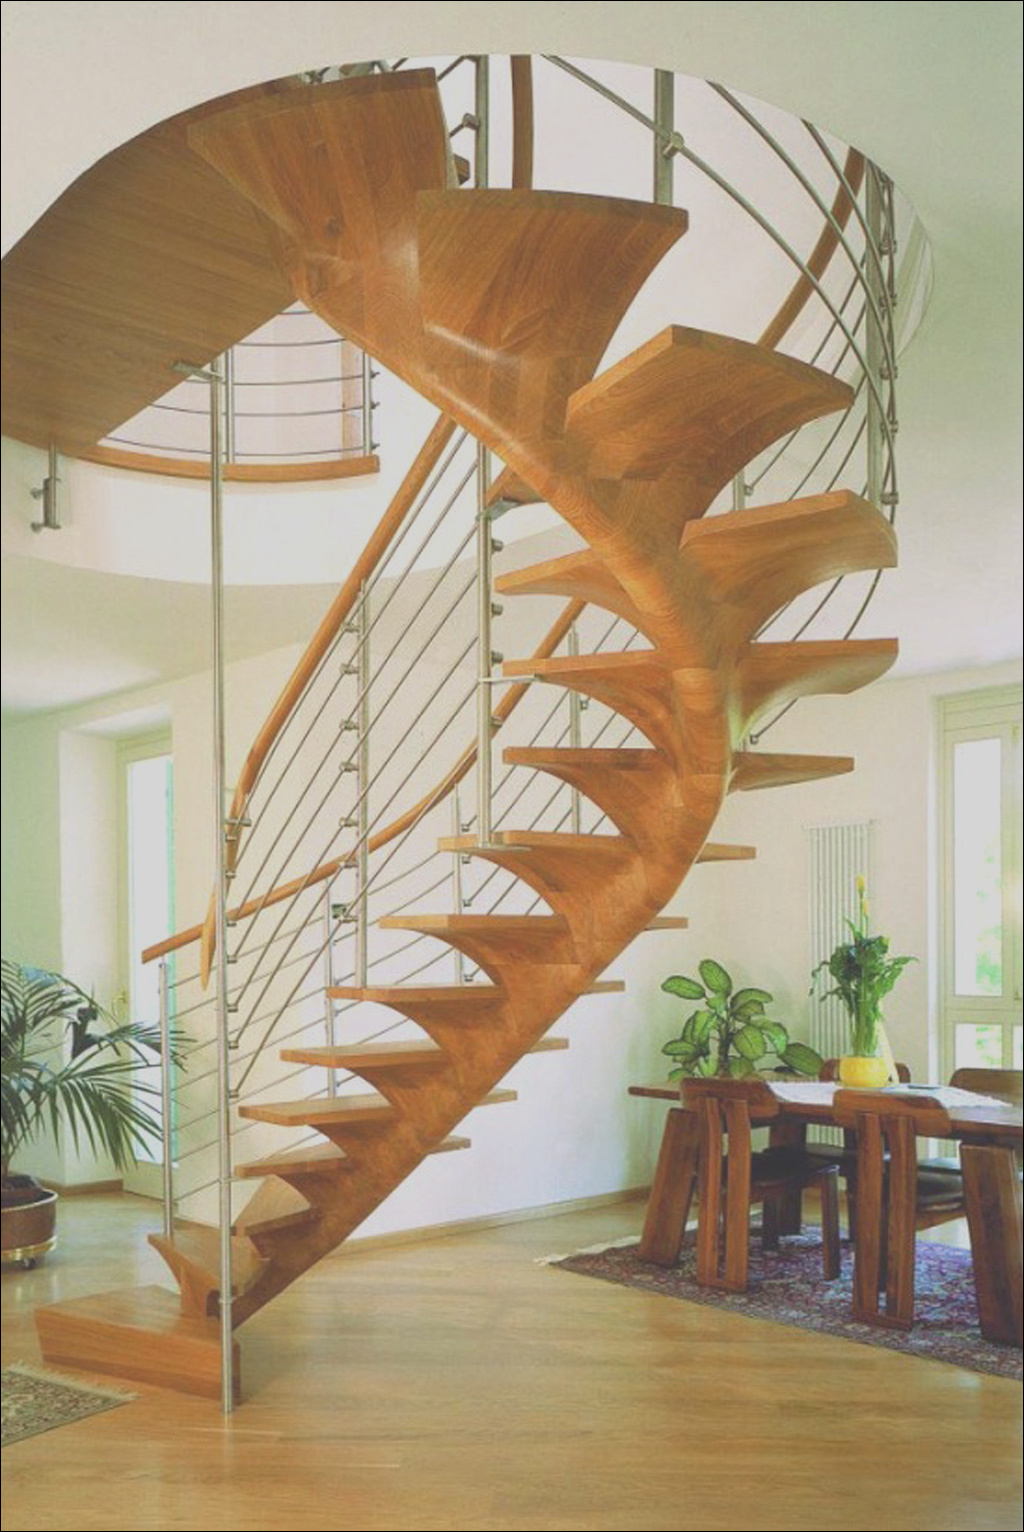 modern spiral staircase construction idea wood glass material siller trepen